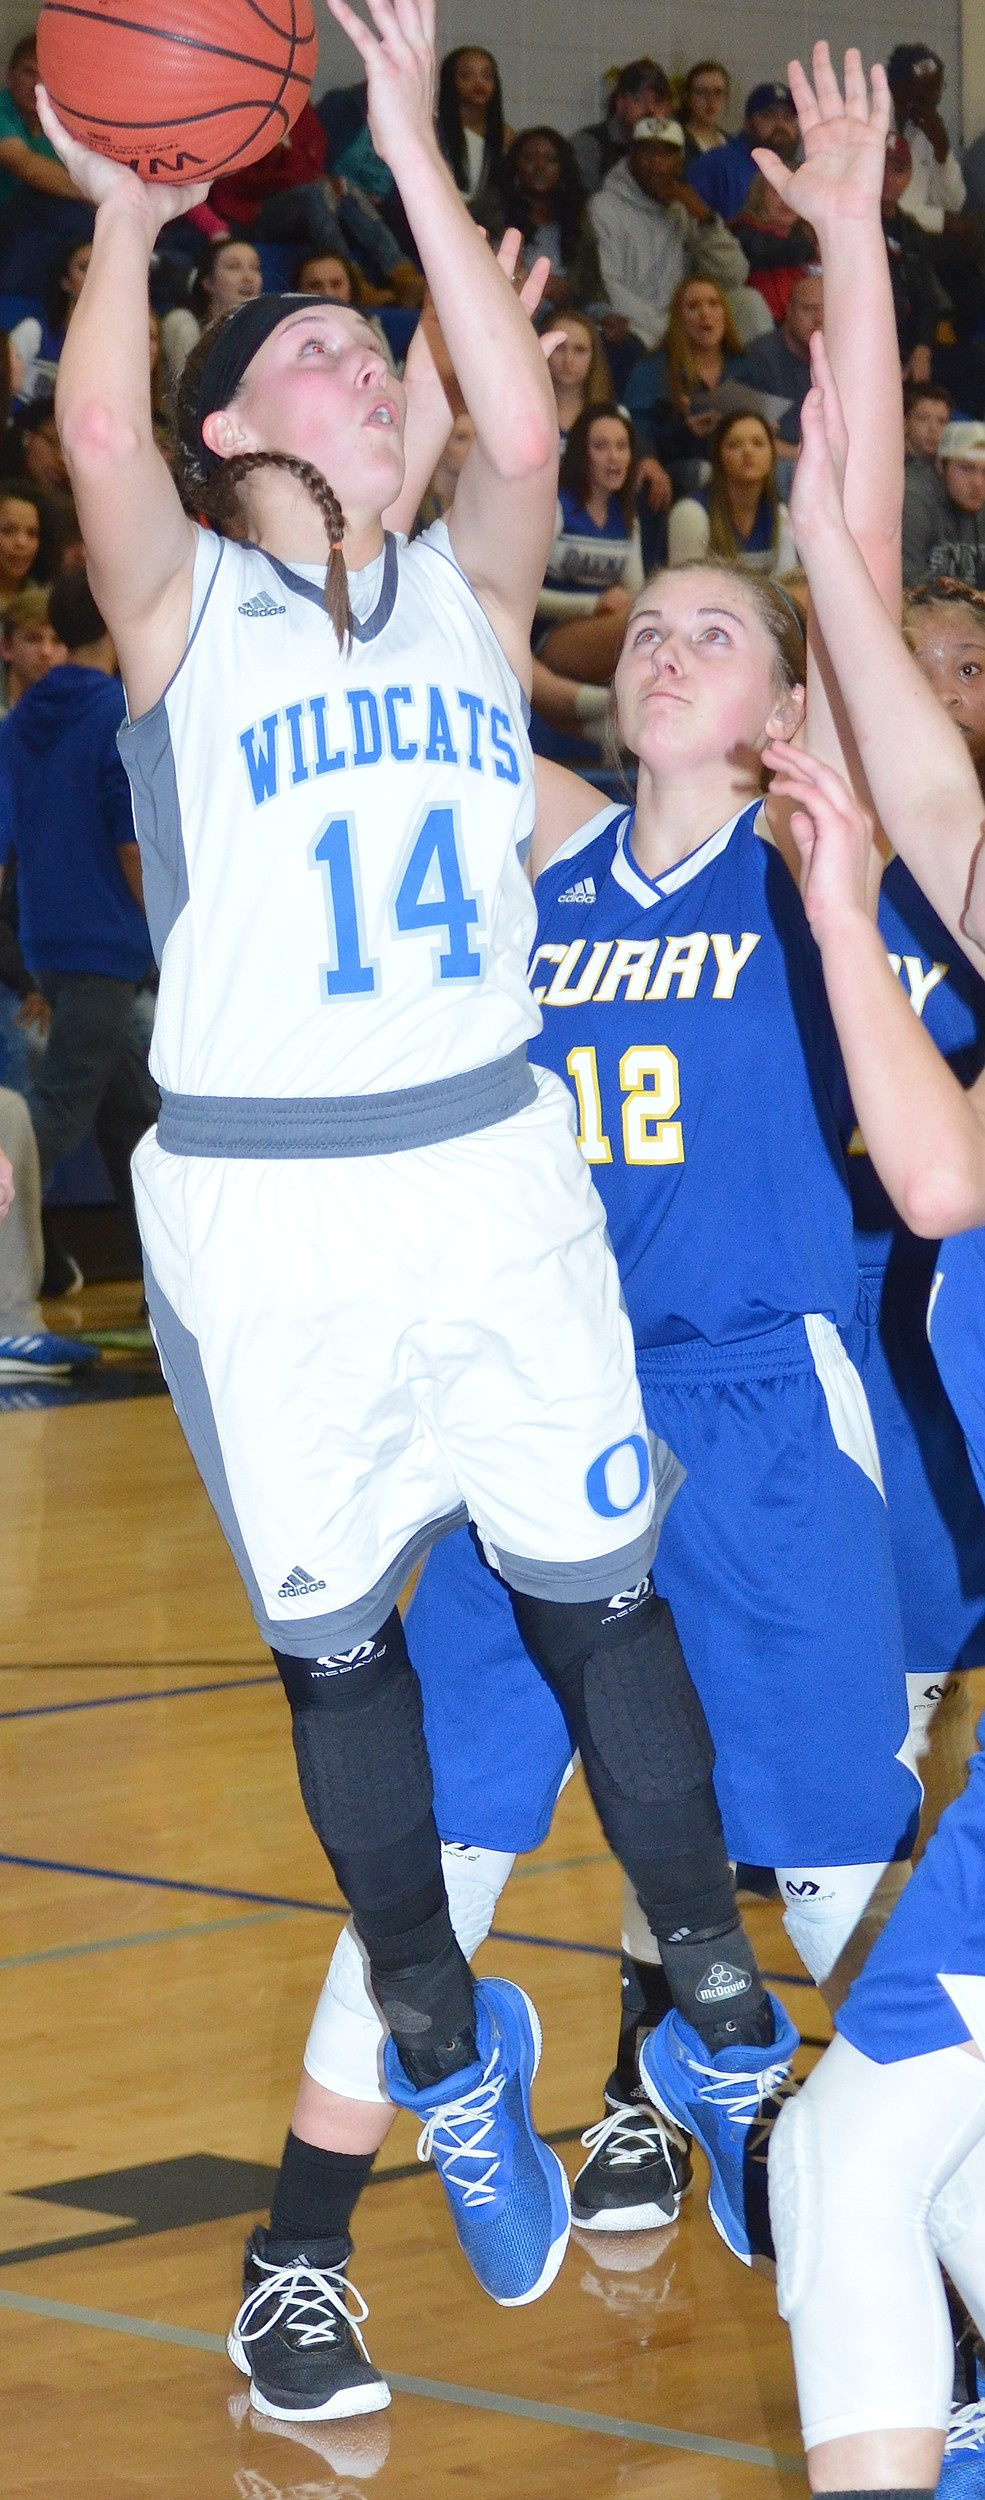 Oakman's Heather Thompson (14) shoots as Curry's Morgan Davison (12) defends during their Walker County Basketball Tournament game Friday at Carbon Hill High School. Thompson had a triple double in the Wildcats' 46-35 win.